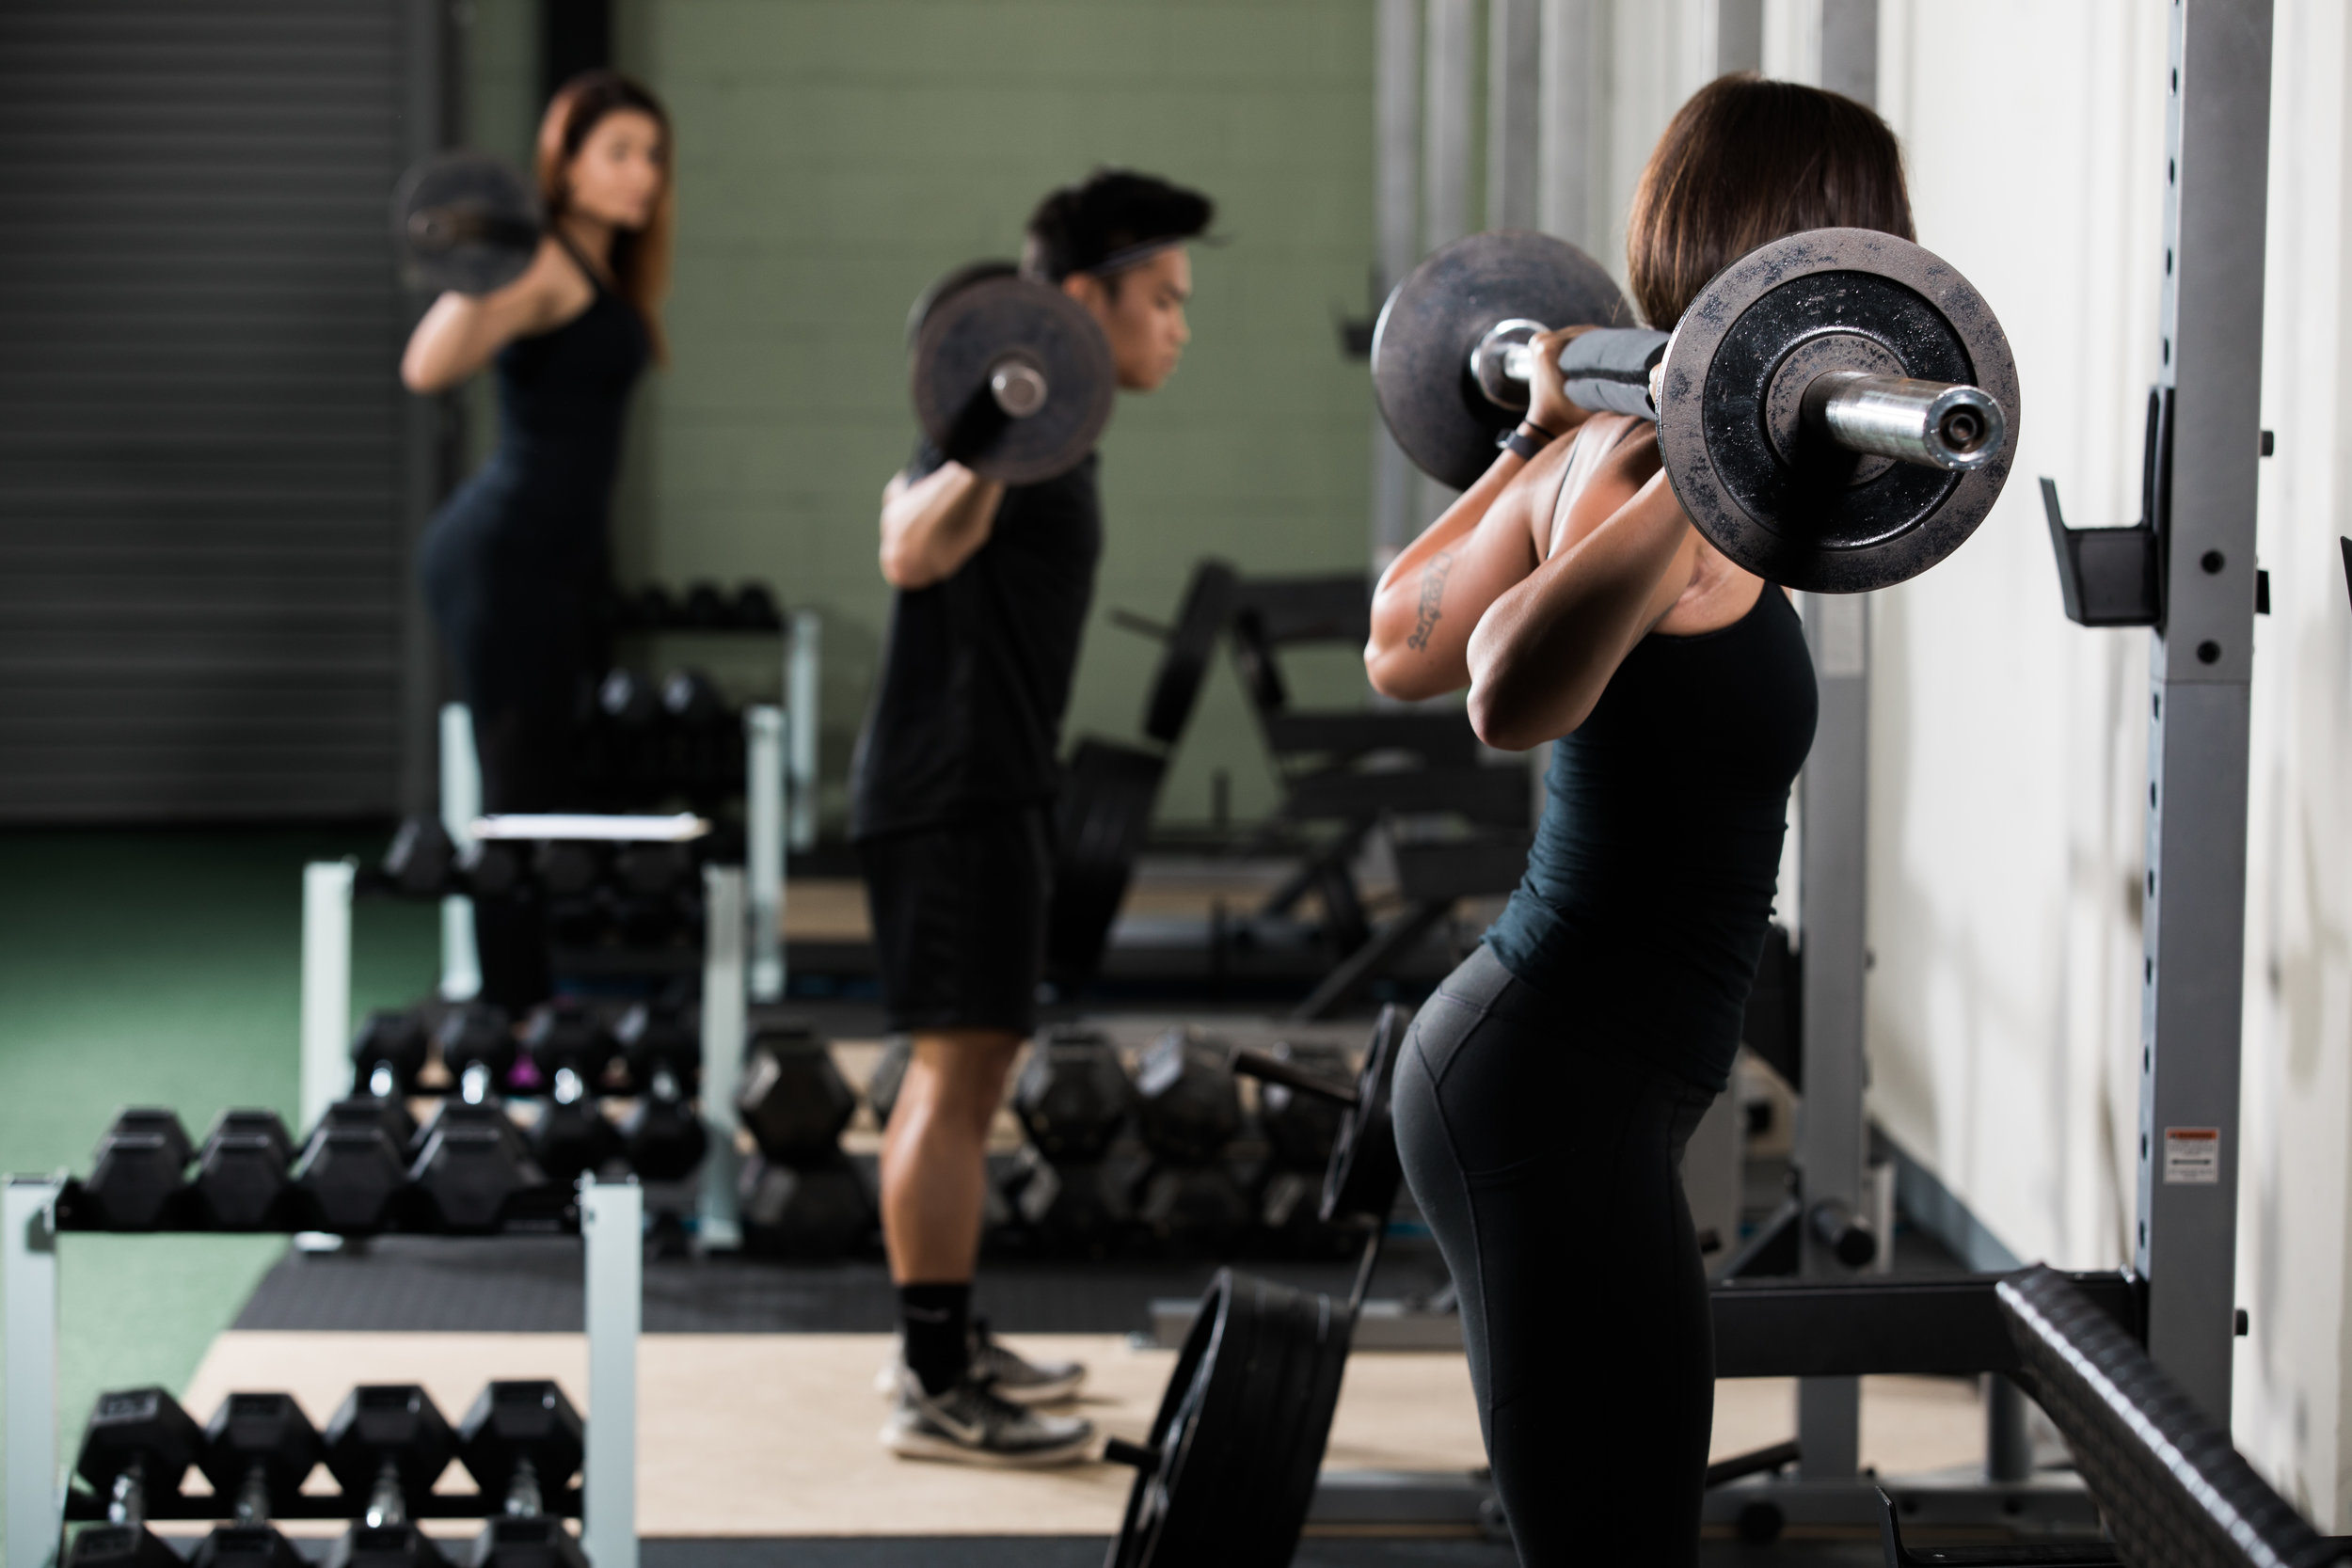 PRIVATE GROUP TRAINING - 6 MONTH PROGRAM   6 Month Contractual Commitment  Features: 2 Classes per Week, Access to App Reservation, Fitmetrix Heart Rate Tracking, 1 Complimentary Personal Training Session (30 Minutes), 1 Complimentary Nutrition Coaching Session (30 Minutes)